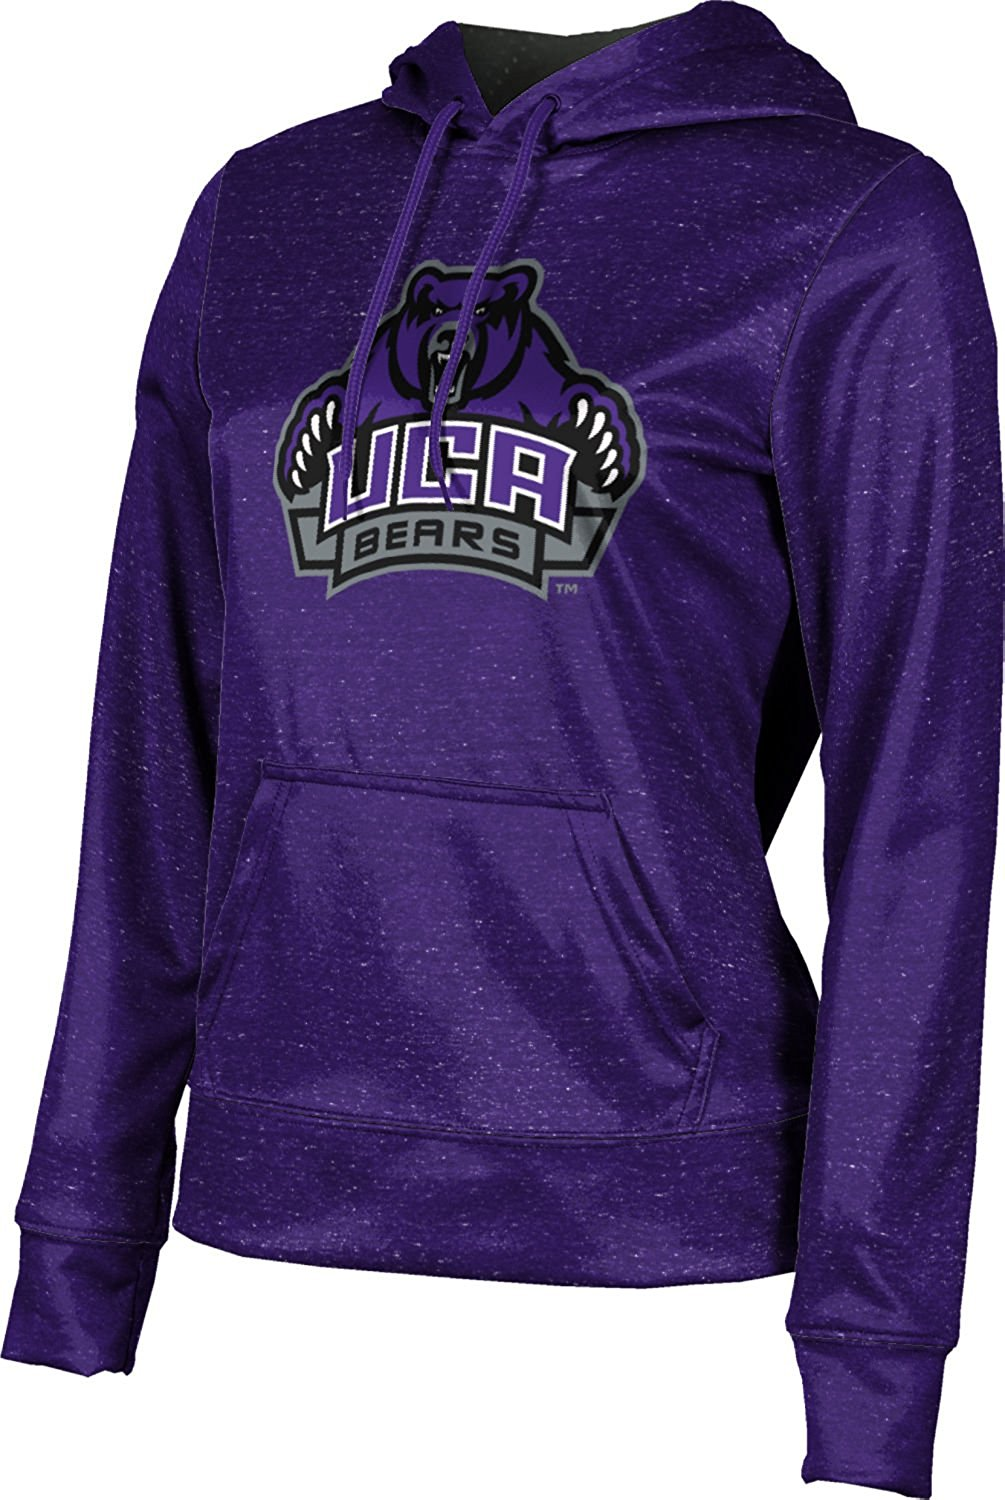 ProSphere Girls' University of Central Arkansas Heather Pullover Hoodie